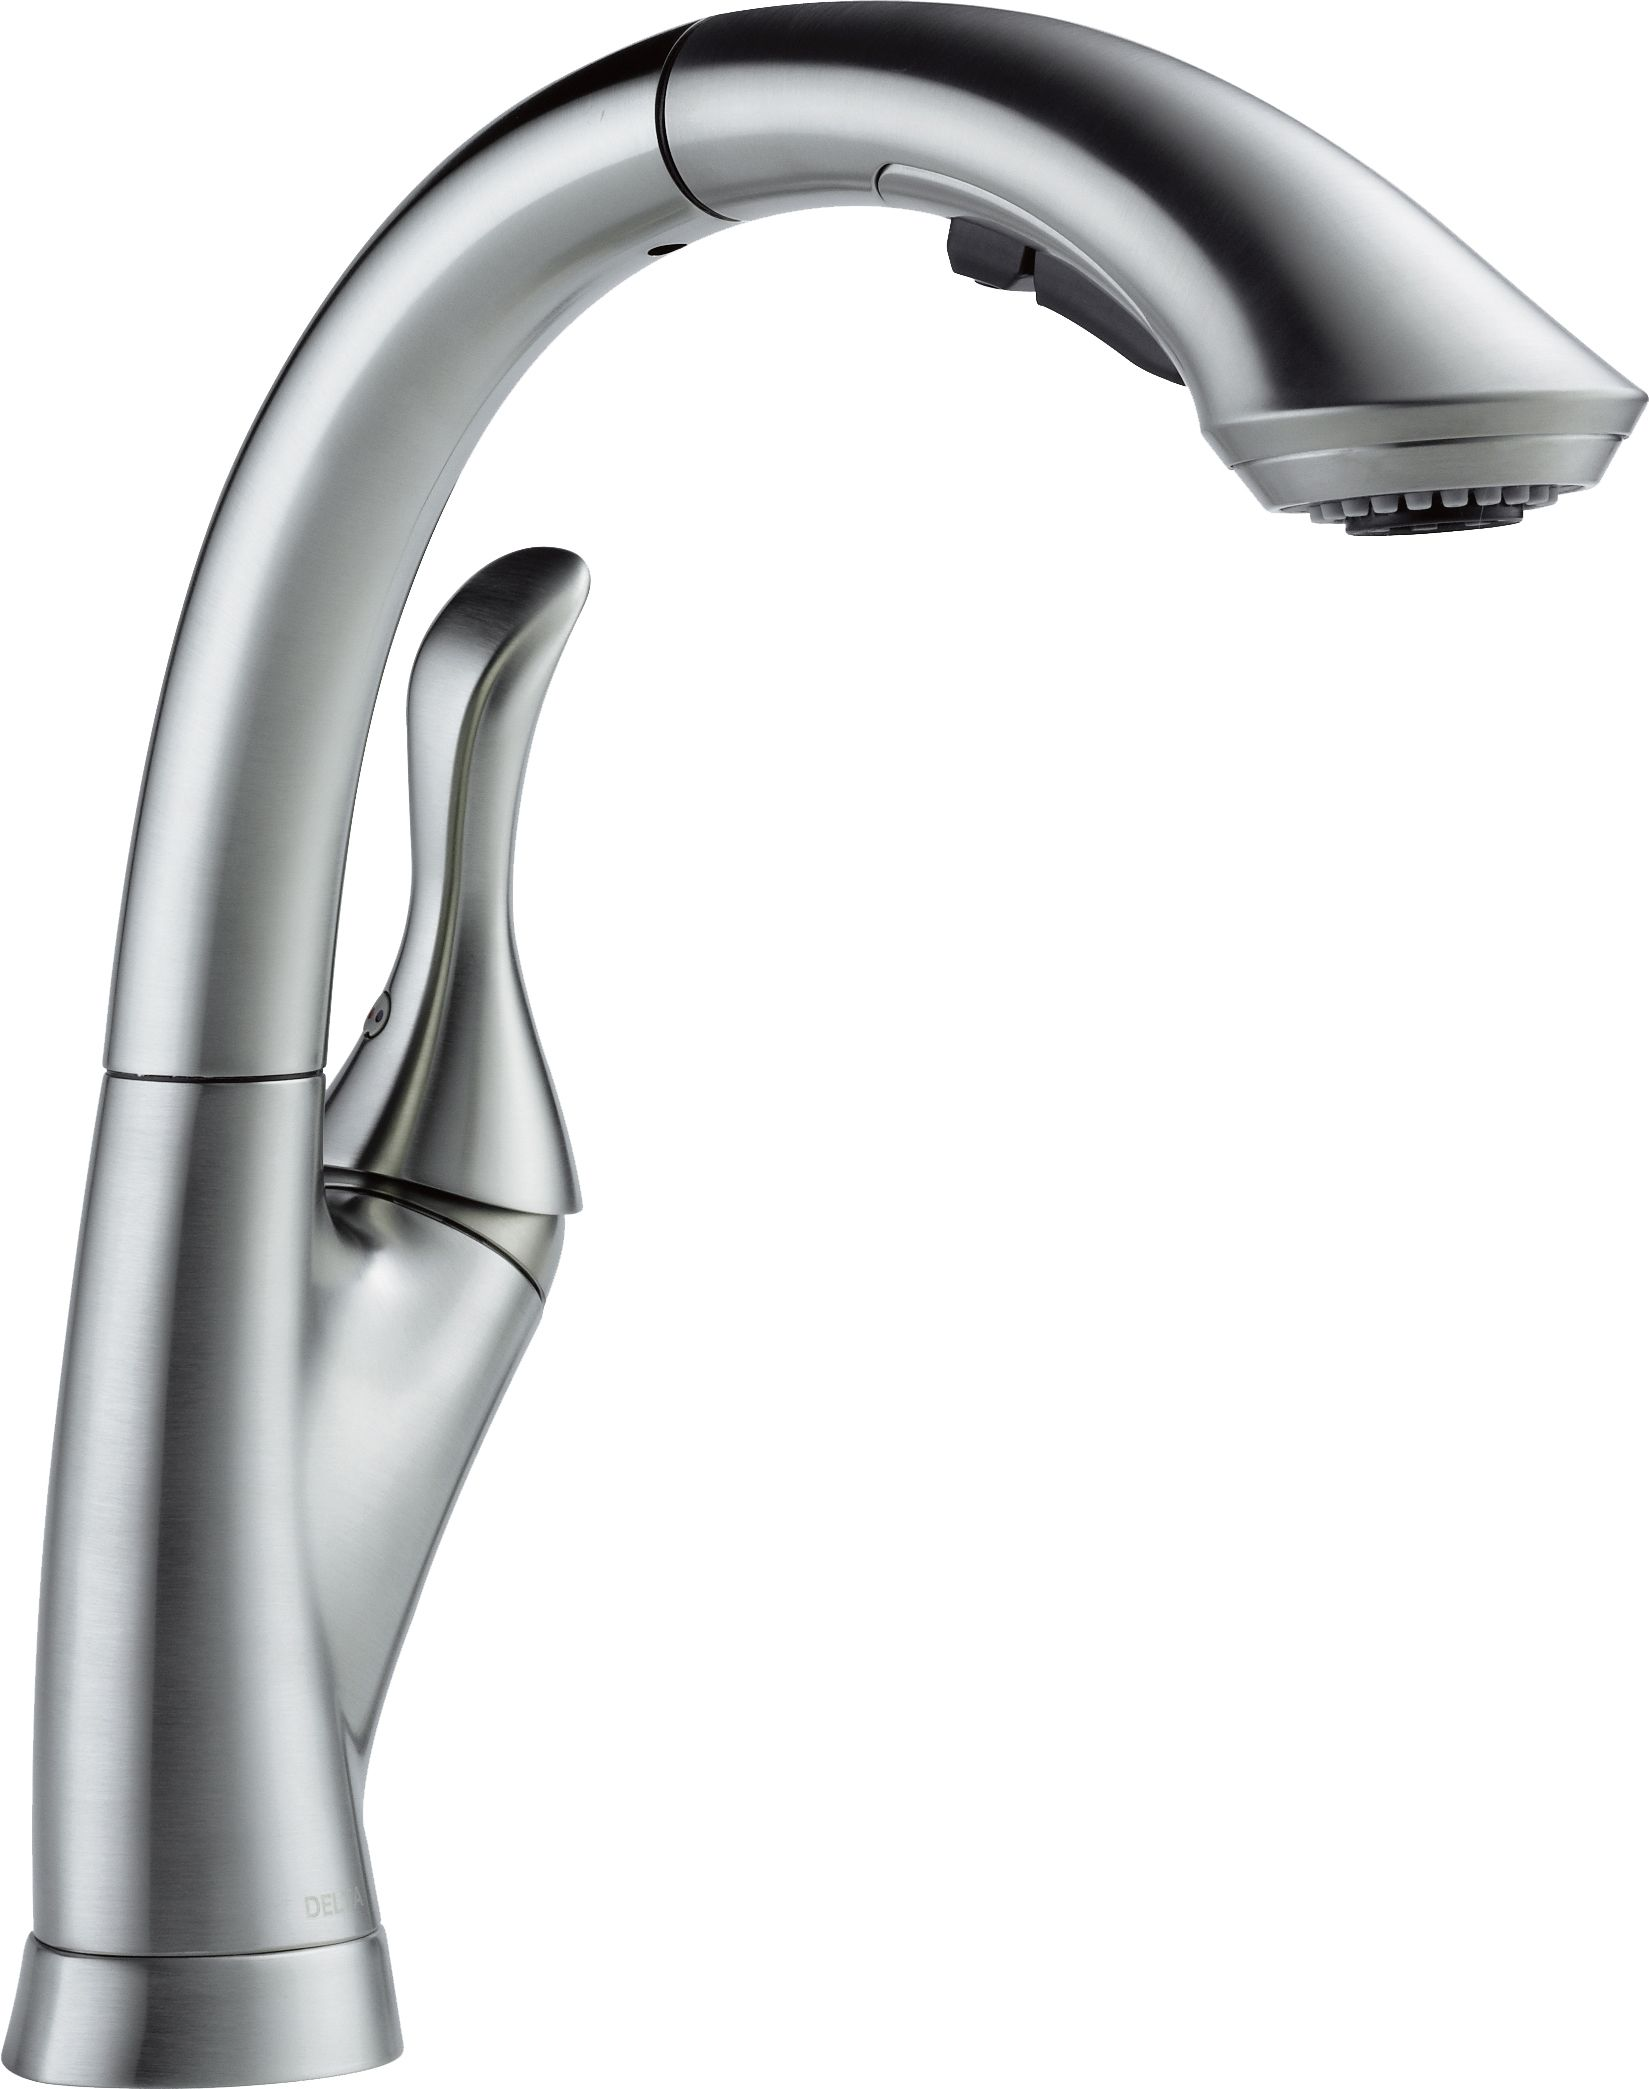 Delta 4153 AR DST Arctic Stainless Linden Pull Out Kitchen Faucet With  Temporary Flow Increase And Optional Base Plate   Includes Lifetime  Warranty ...